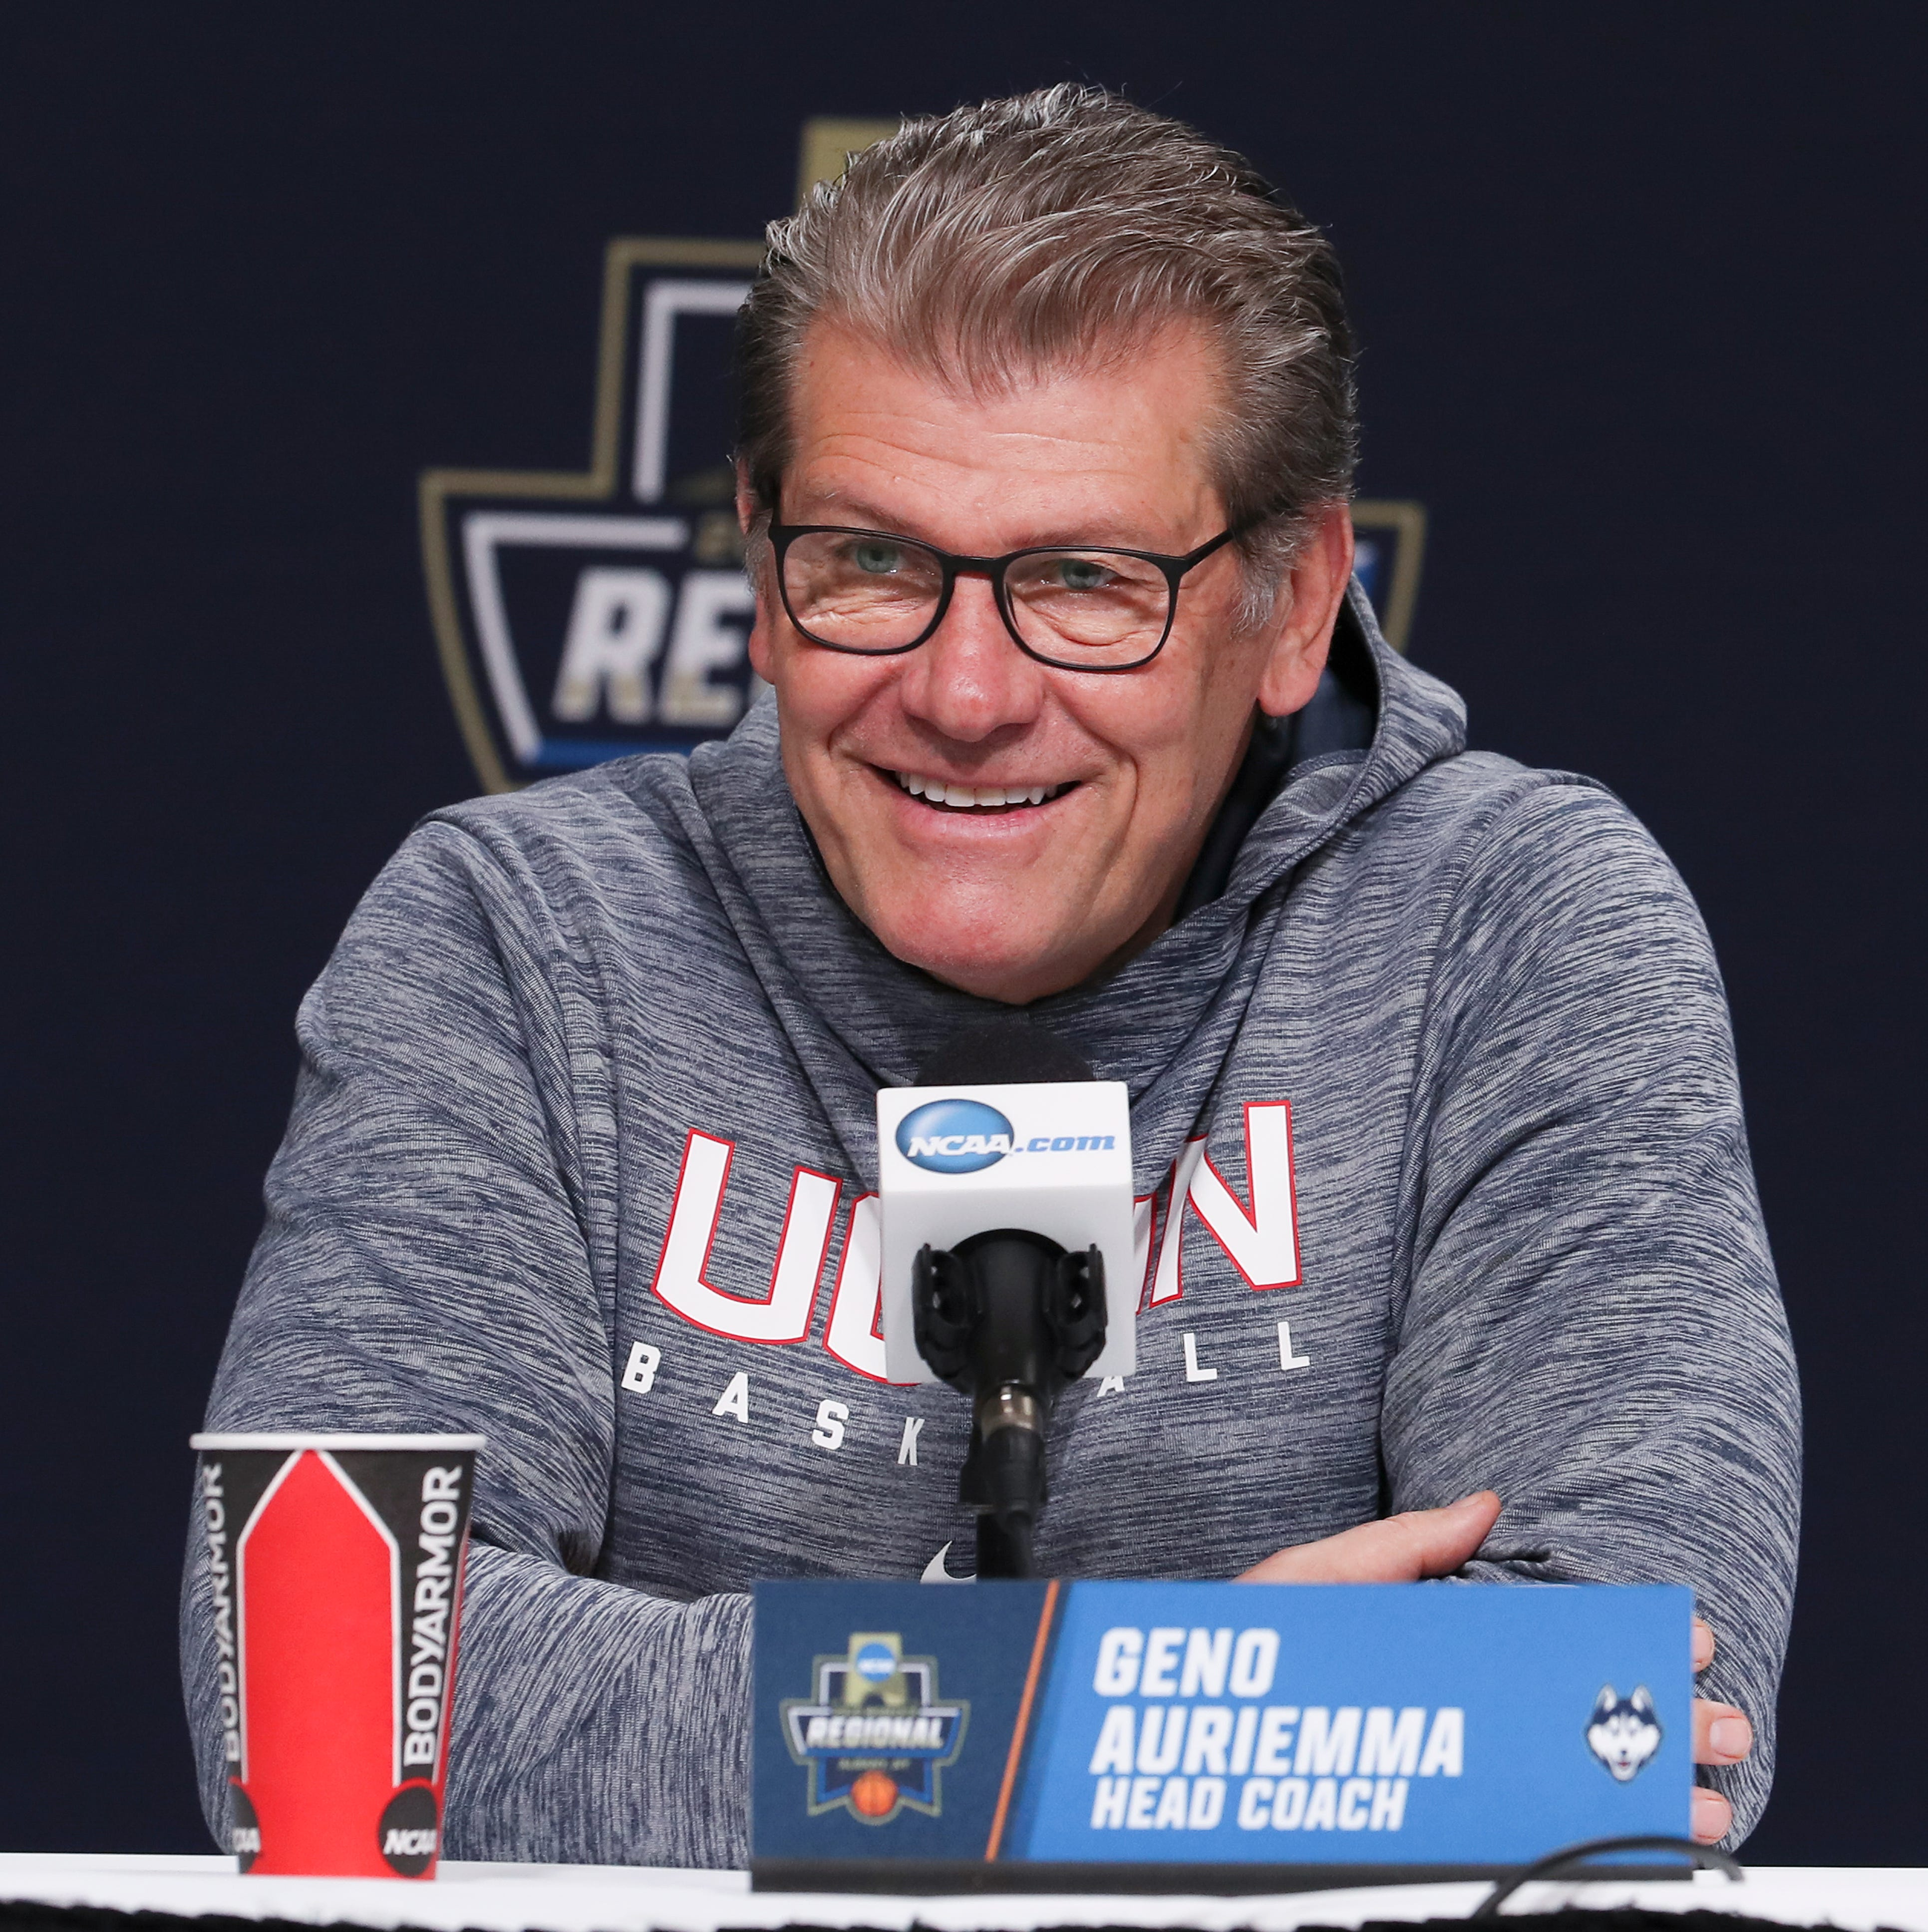 Geno Auriemma on Jeff Walz: 'He's still the coach at Louisville. I read that, too'